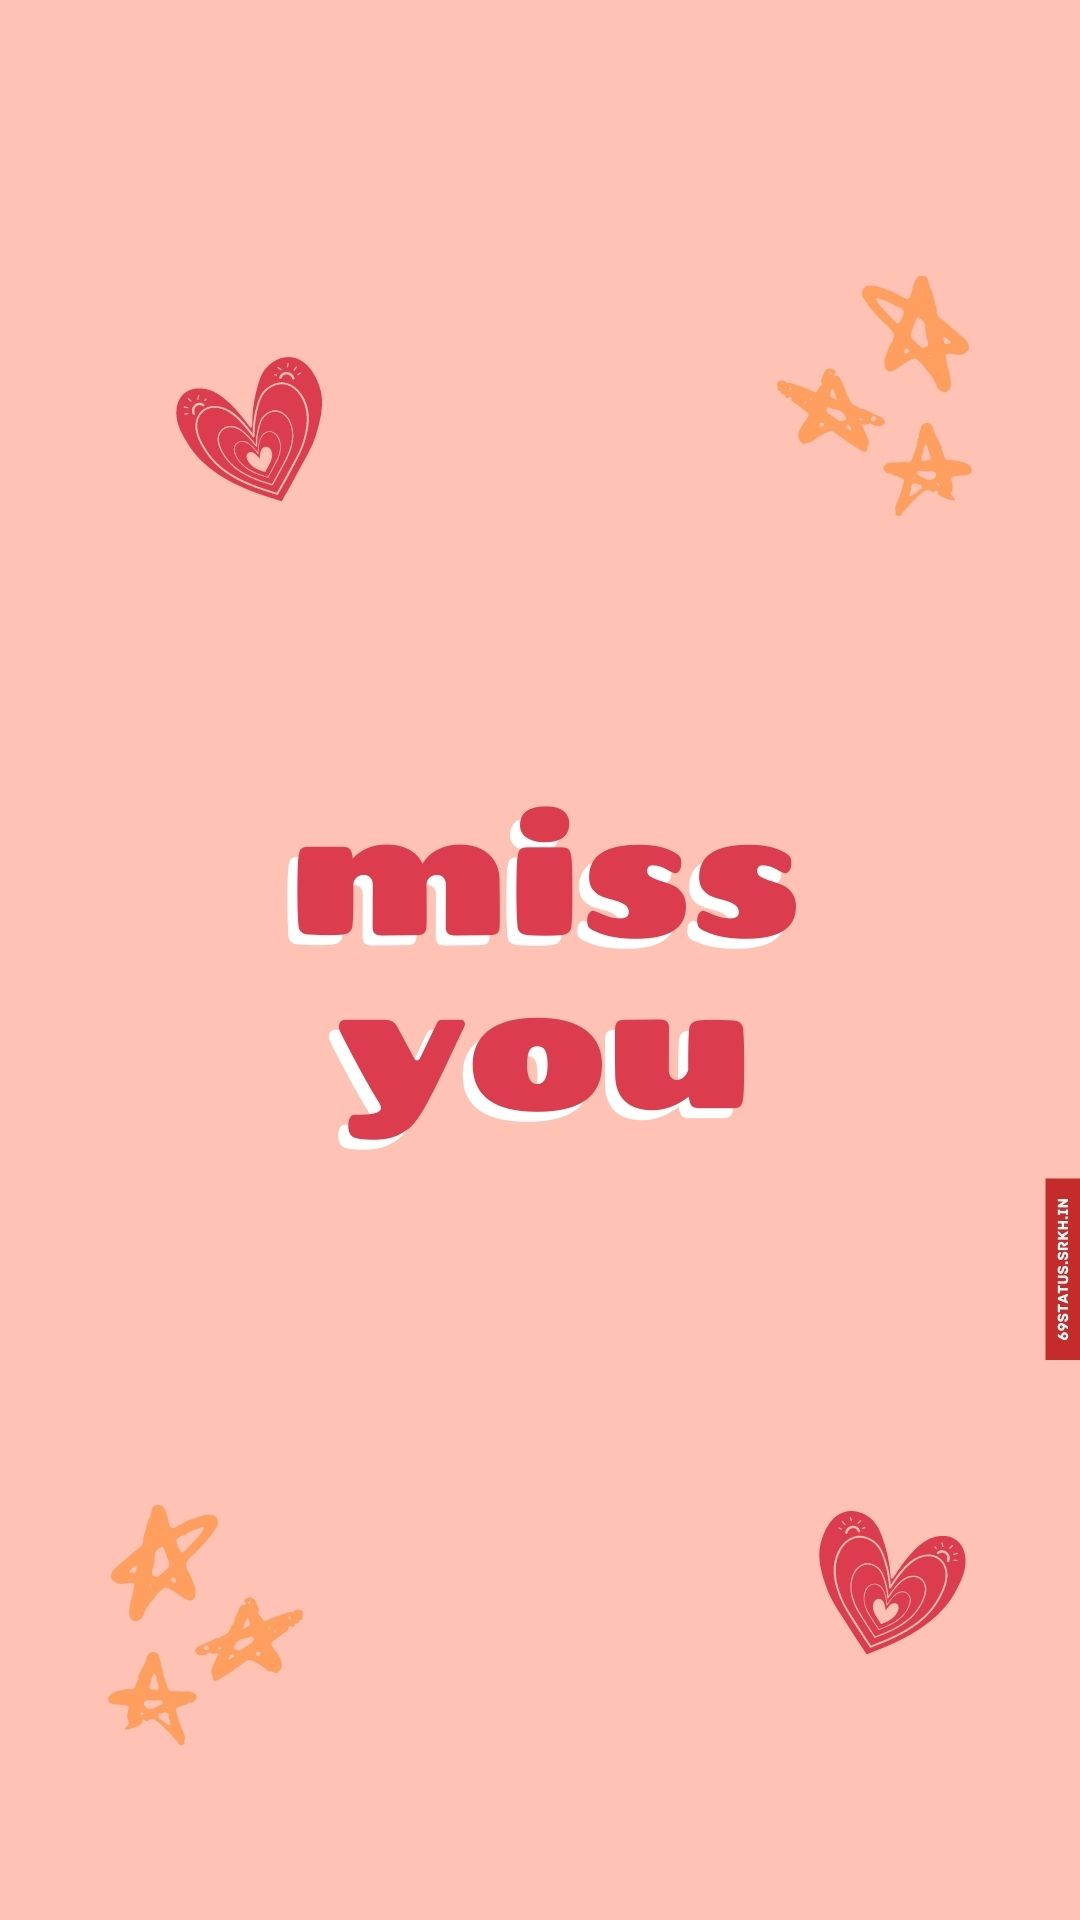 Miss you images wallpaper full HD free download.